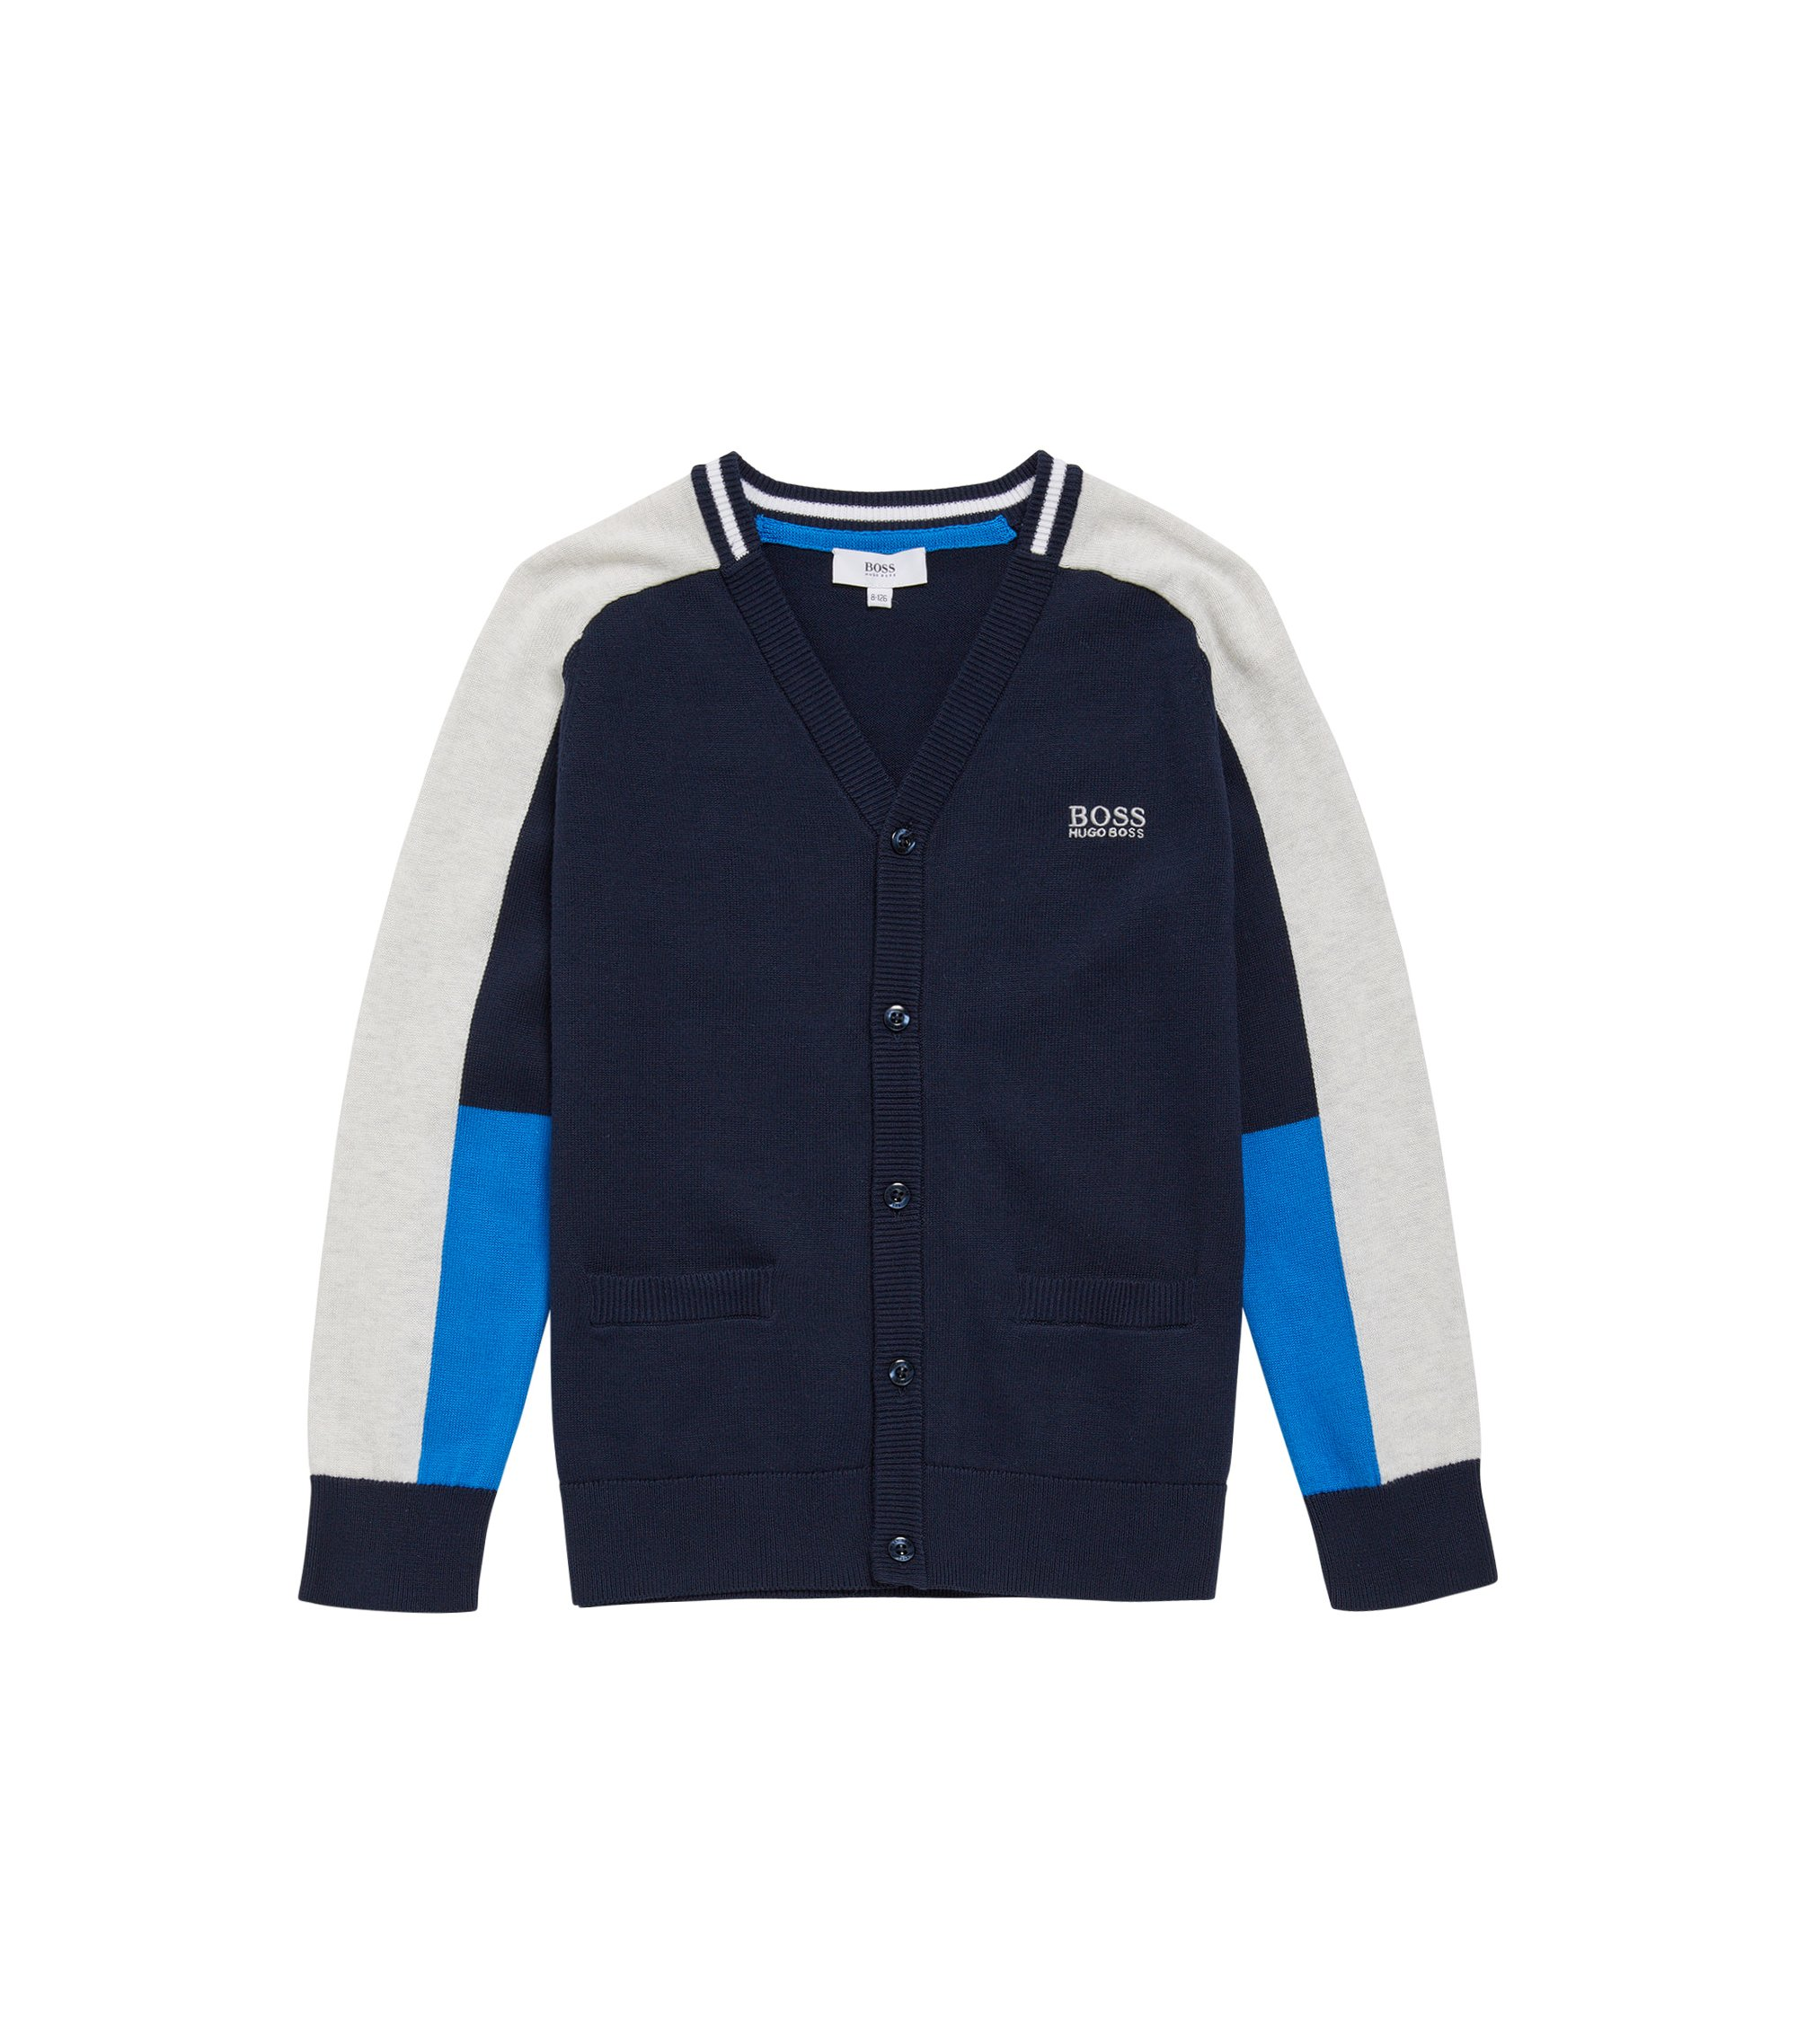 Kids' cardigan in cotton with front pockets: 'J25975', Dark Blue